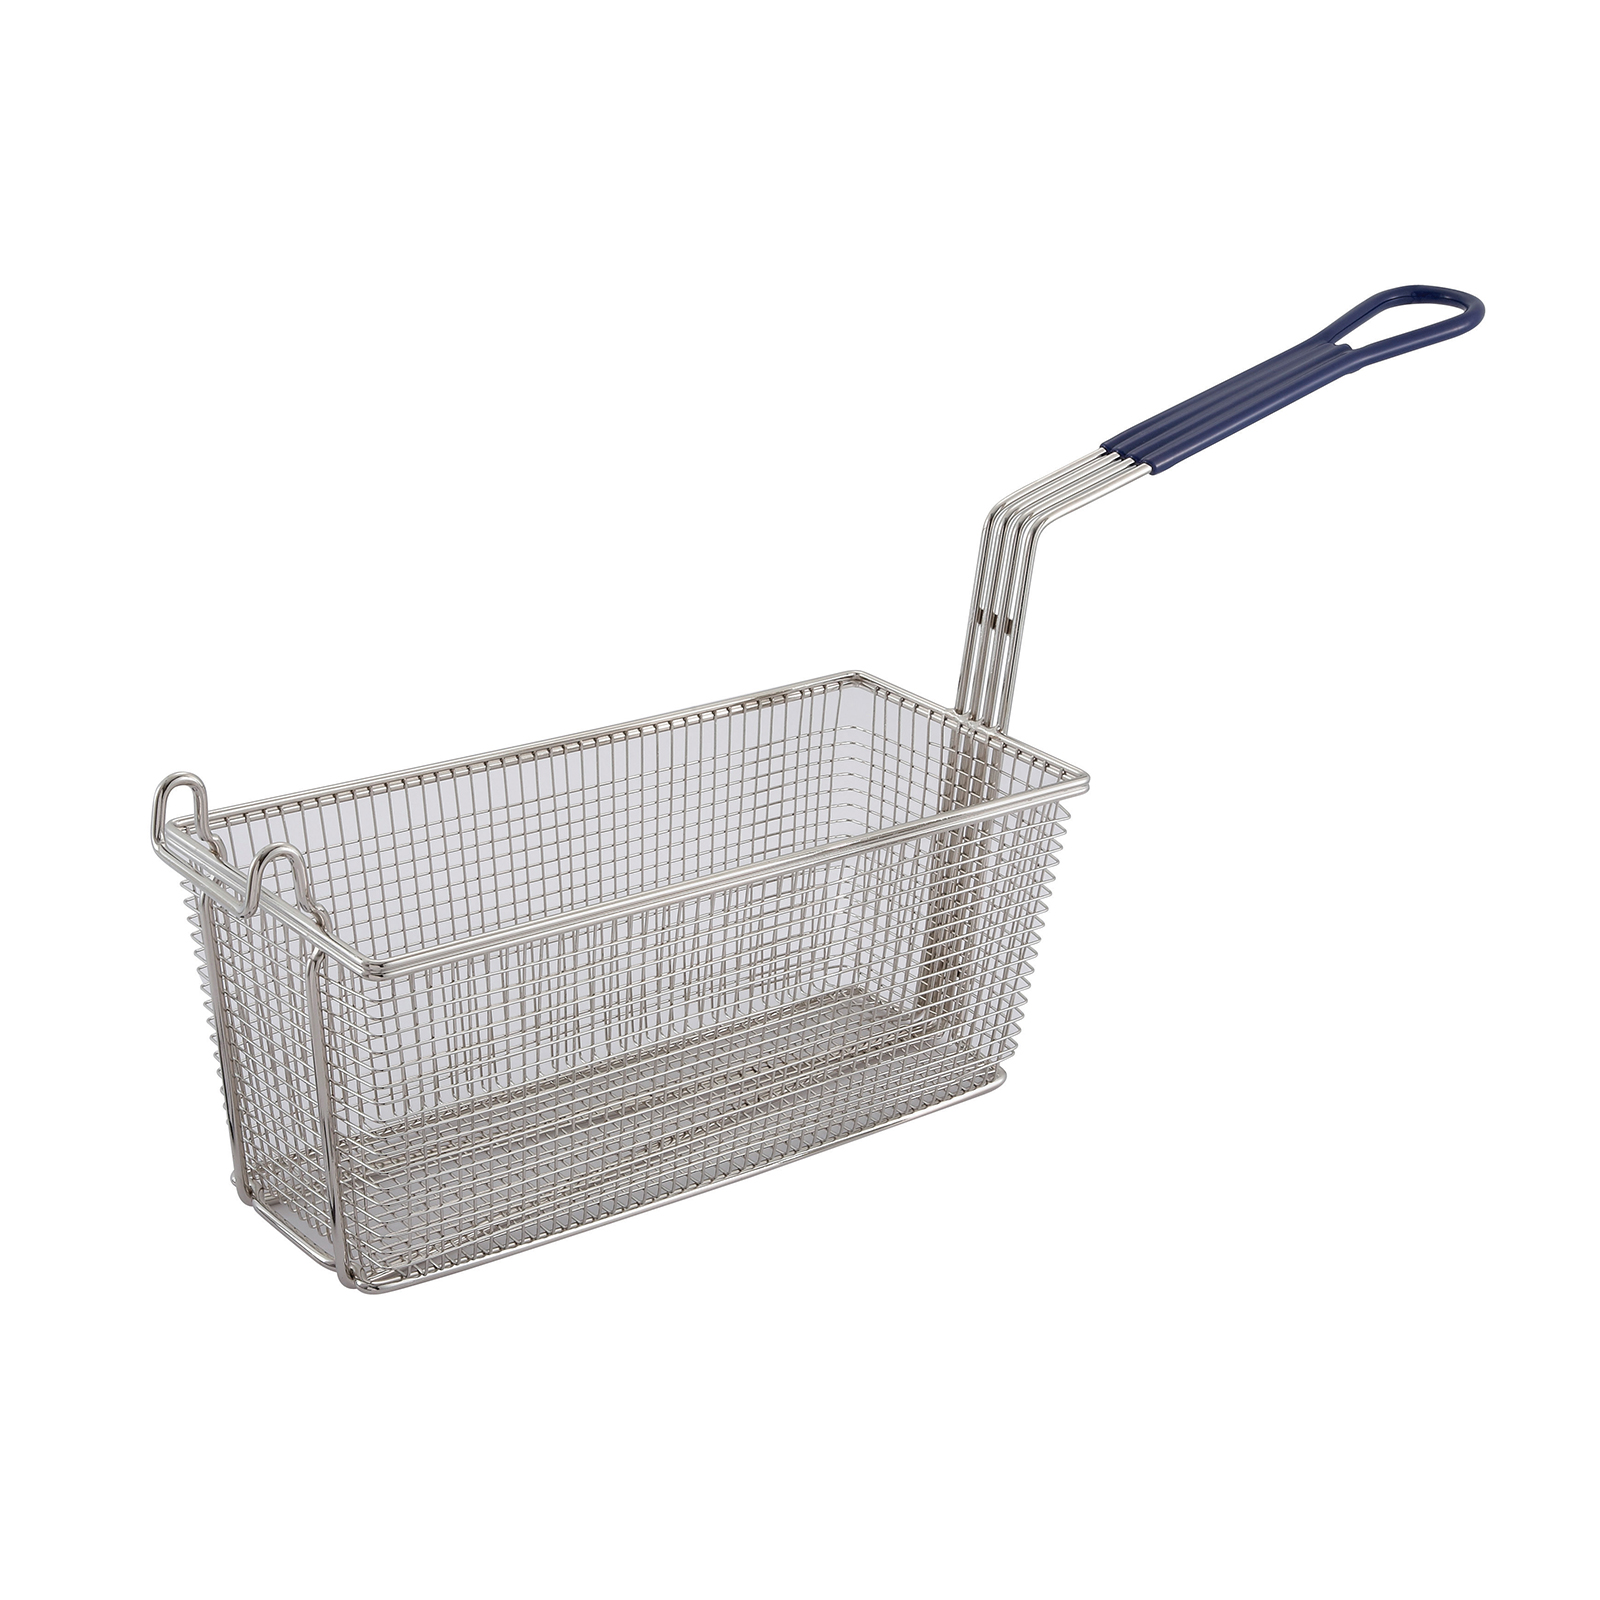 Winco FB-20 fryer basket